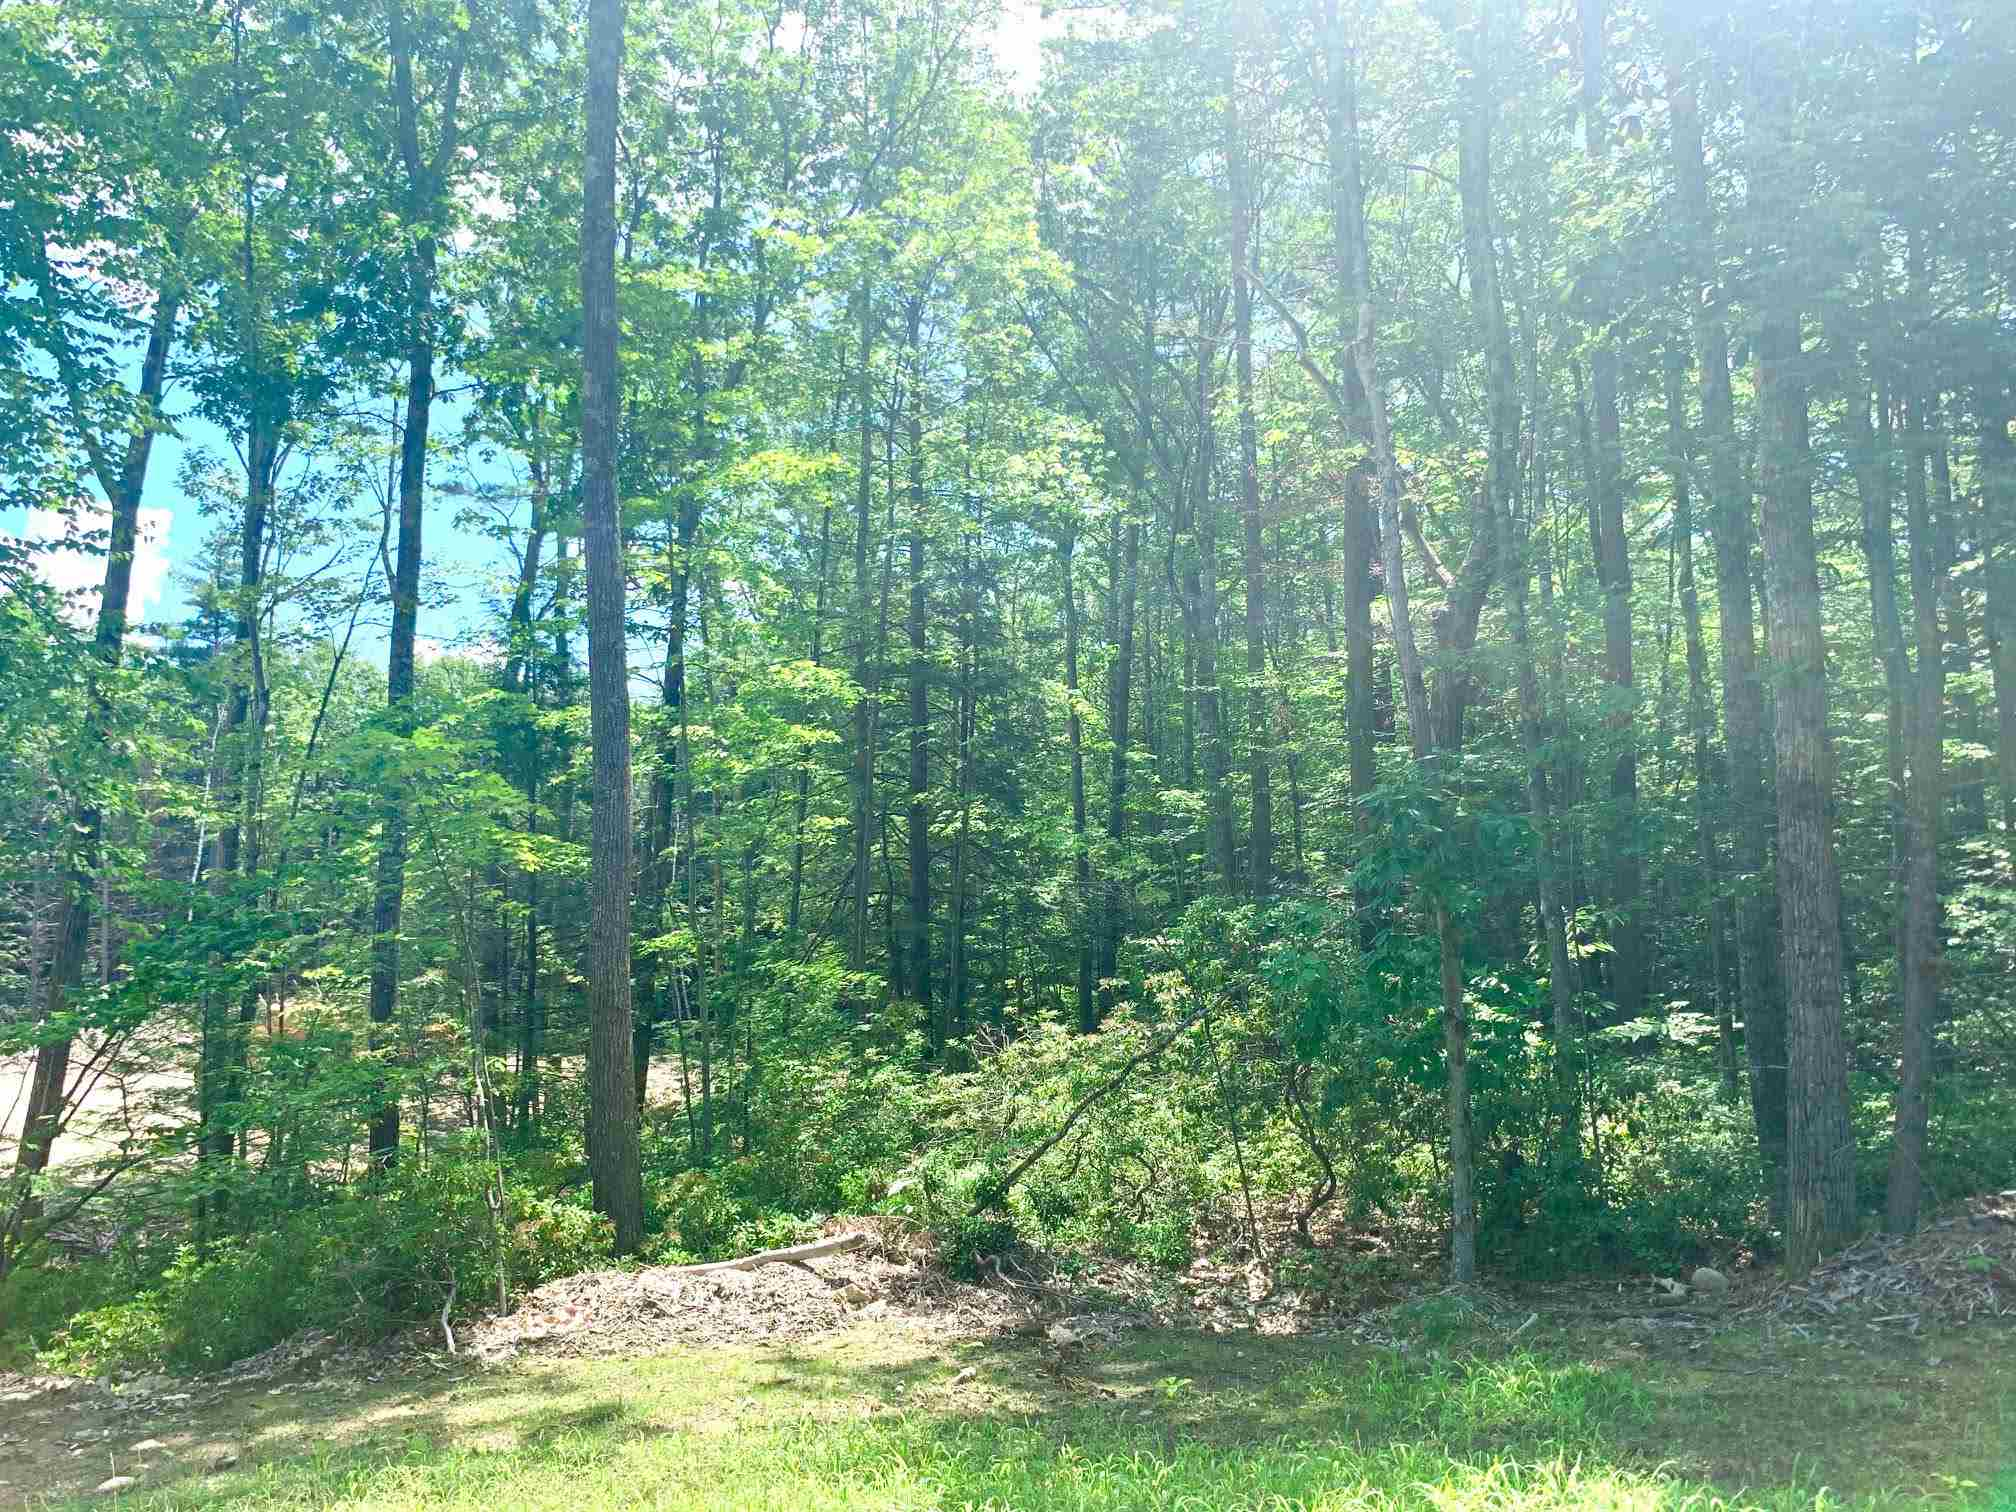 MLS 4818486: Lot 35 Founders Way, Amherst NH